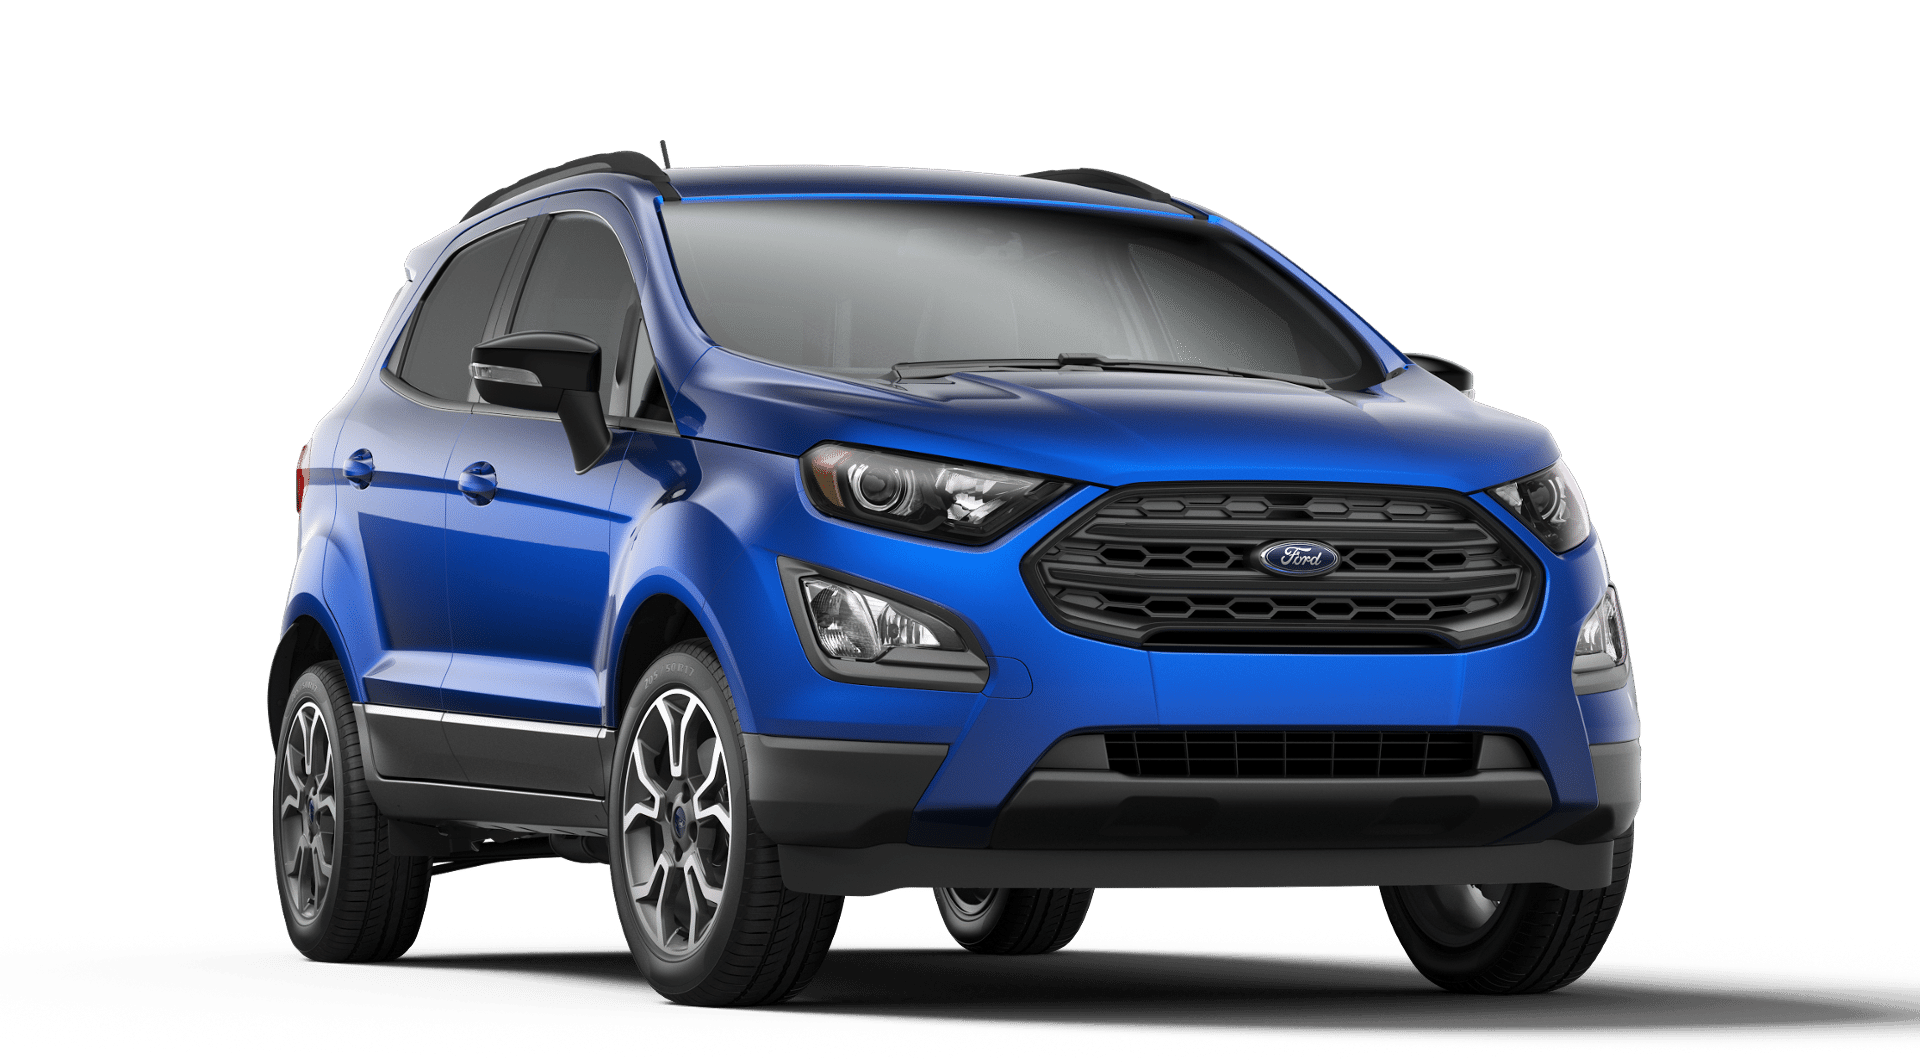 2019-Ford-EcoSport-Lightning-Blue-Exterior-Color_o